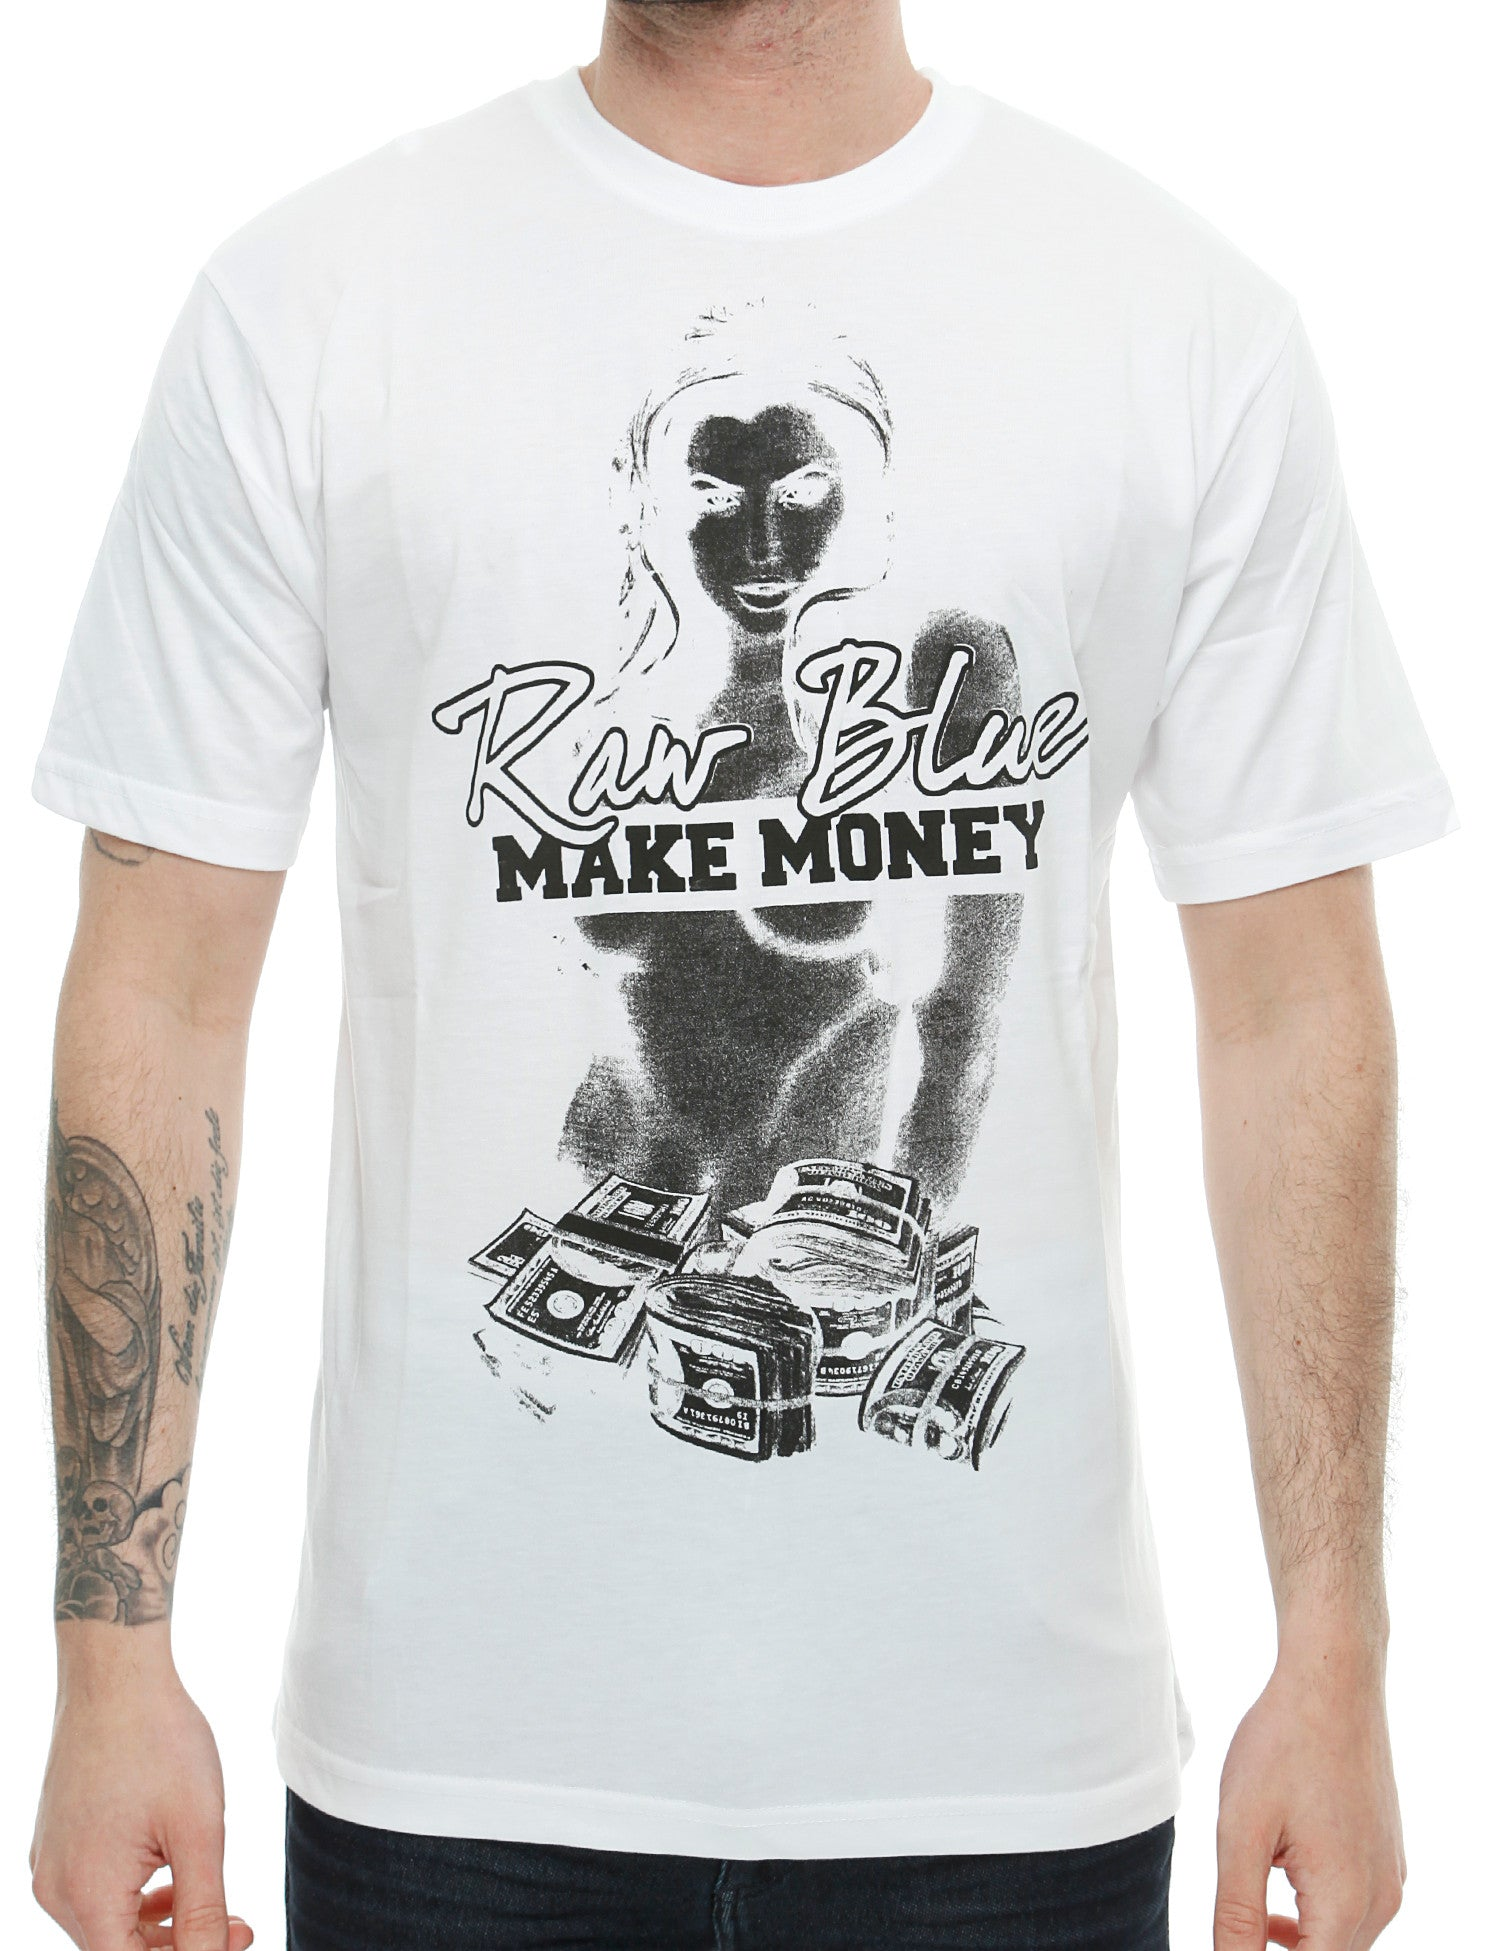 Raw Blue T-Shirt G-Money White